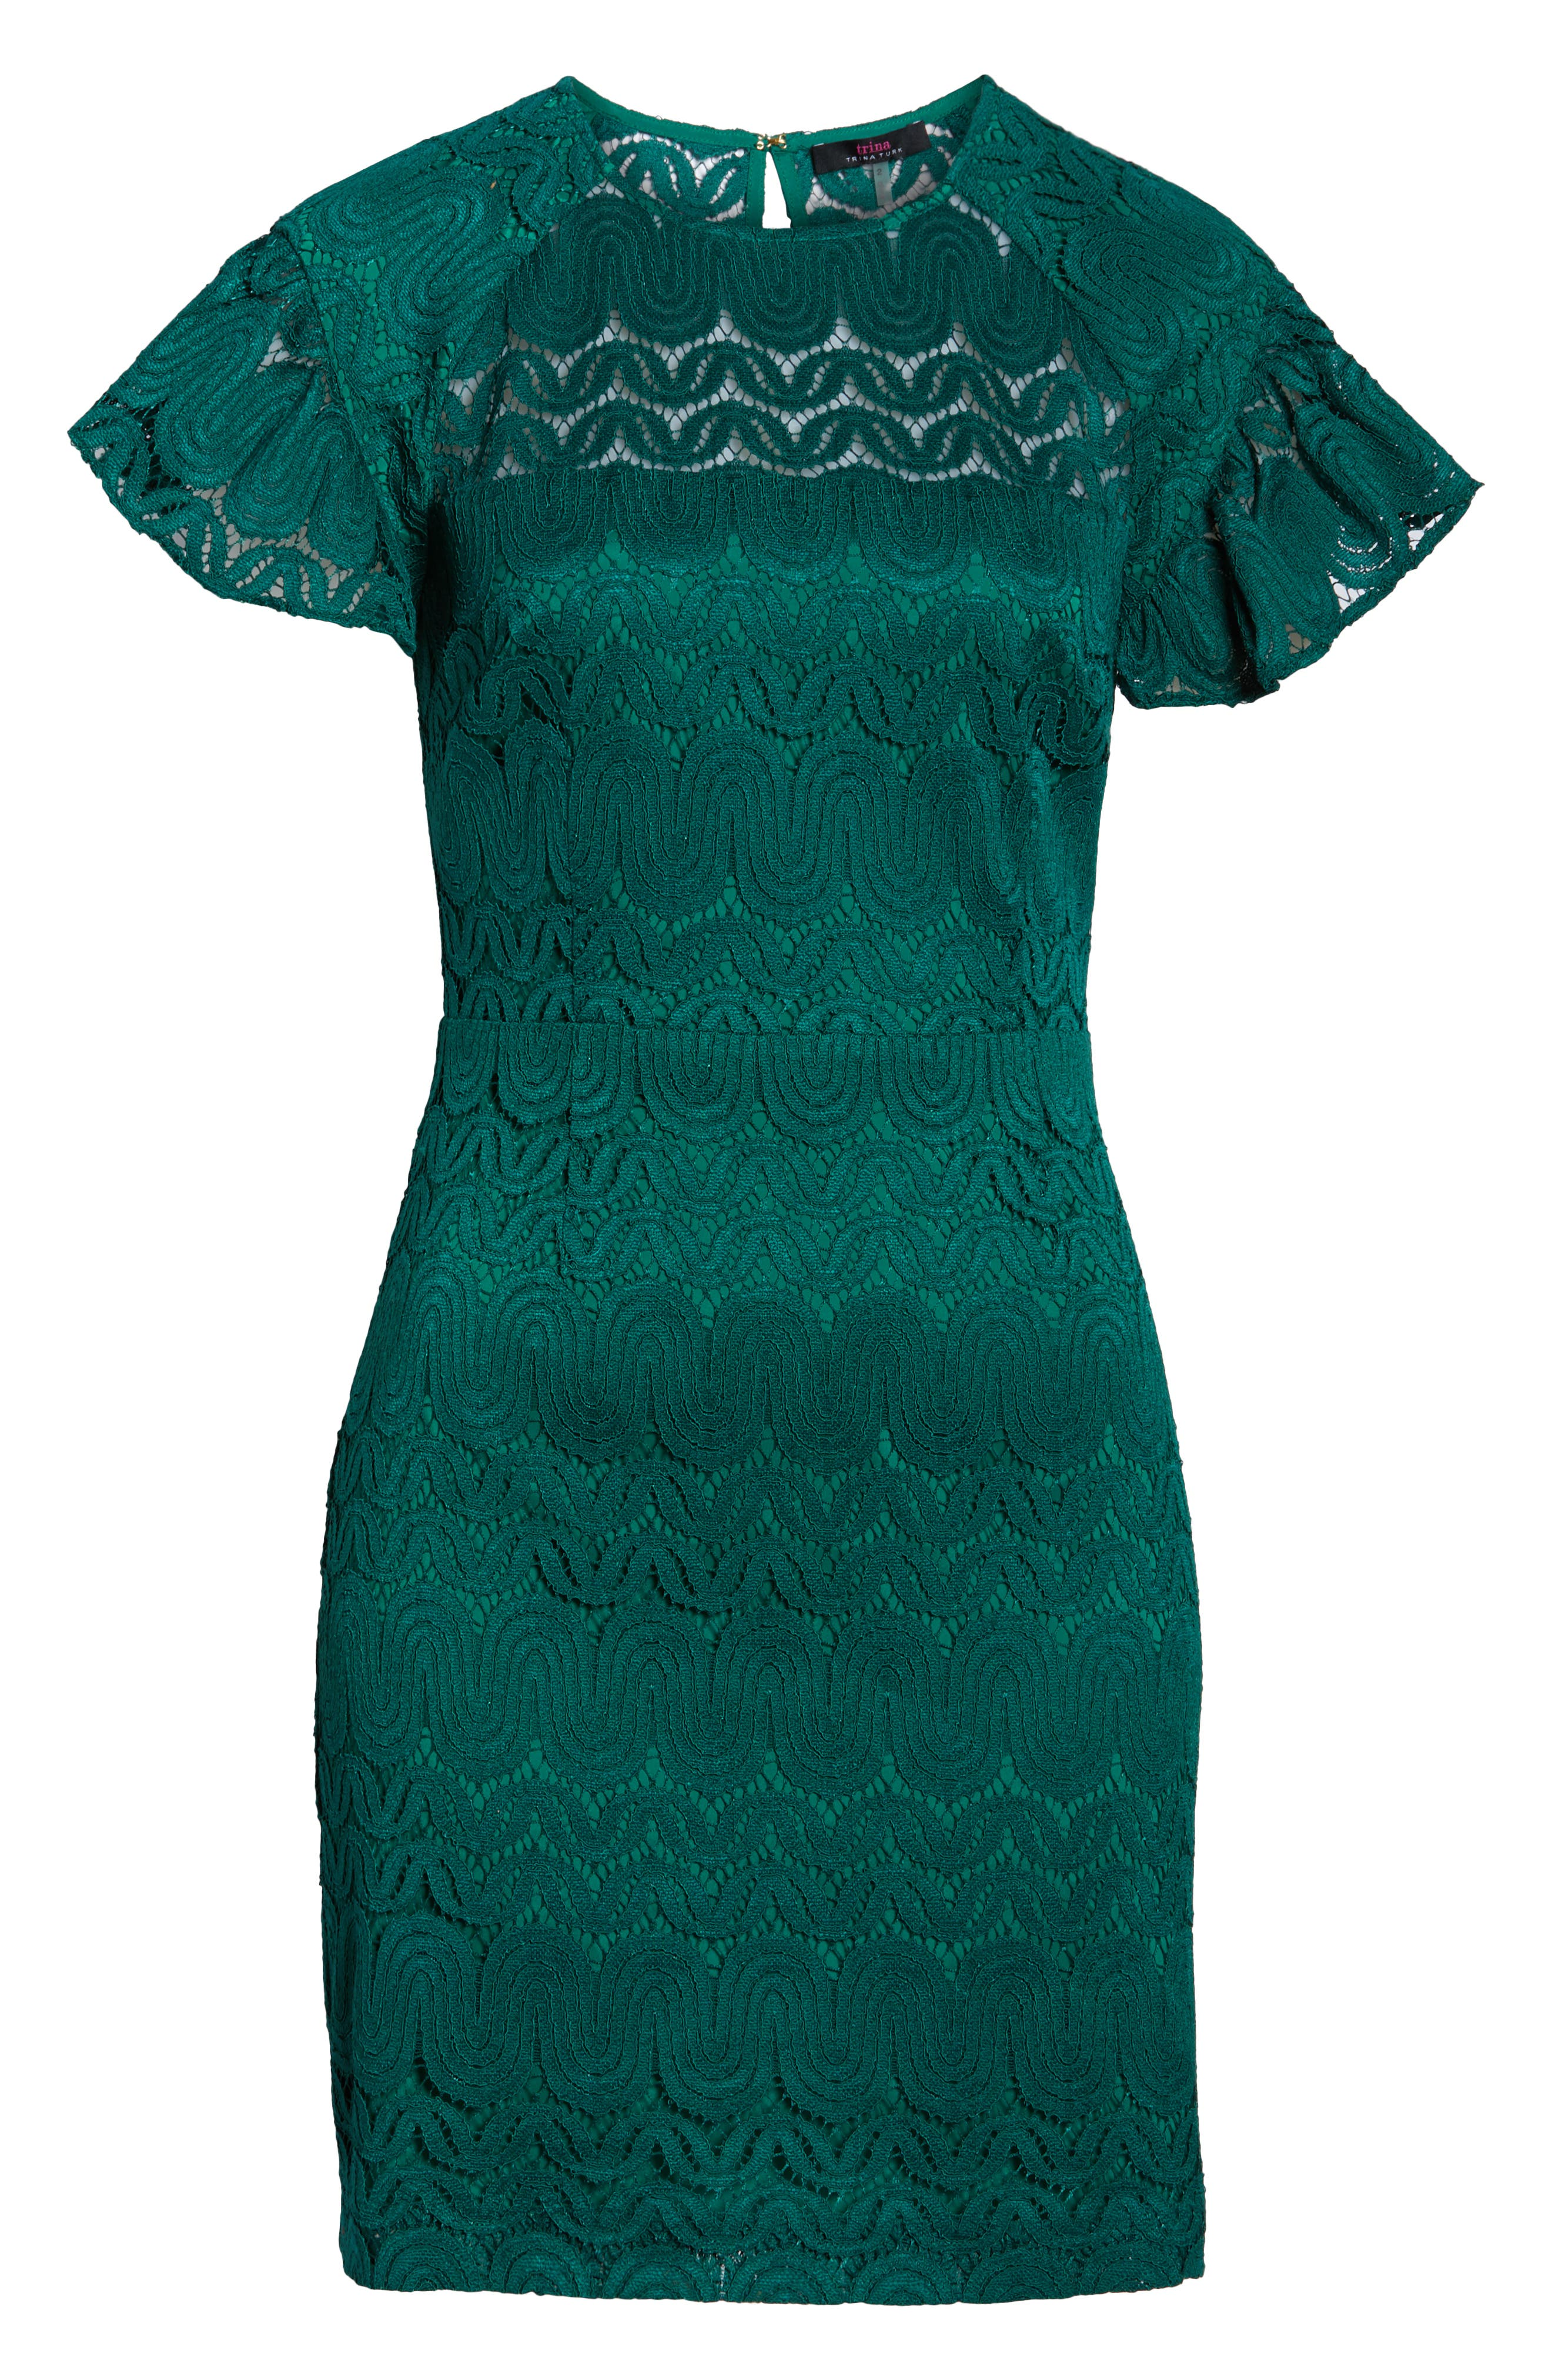 Mai Tai Lace Dress,                             Alternate thumbnail 6, color,                             EMERALD